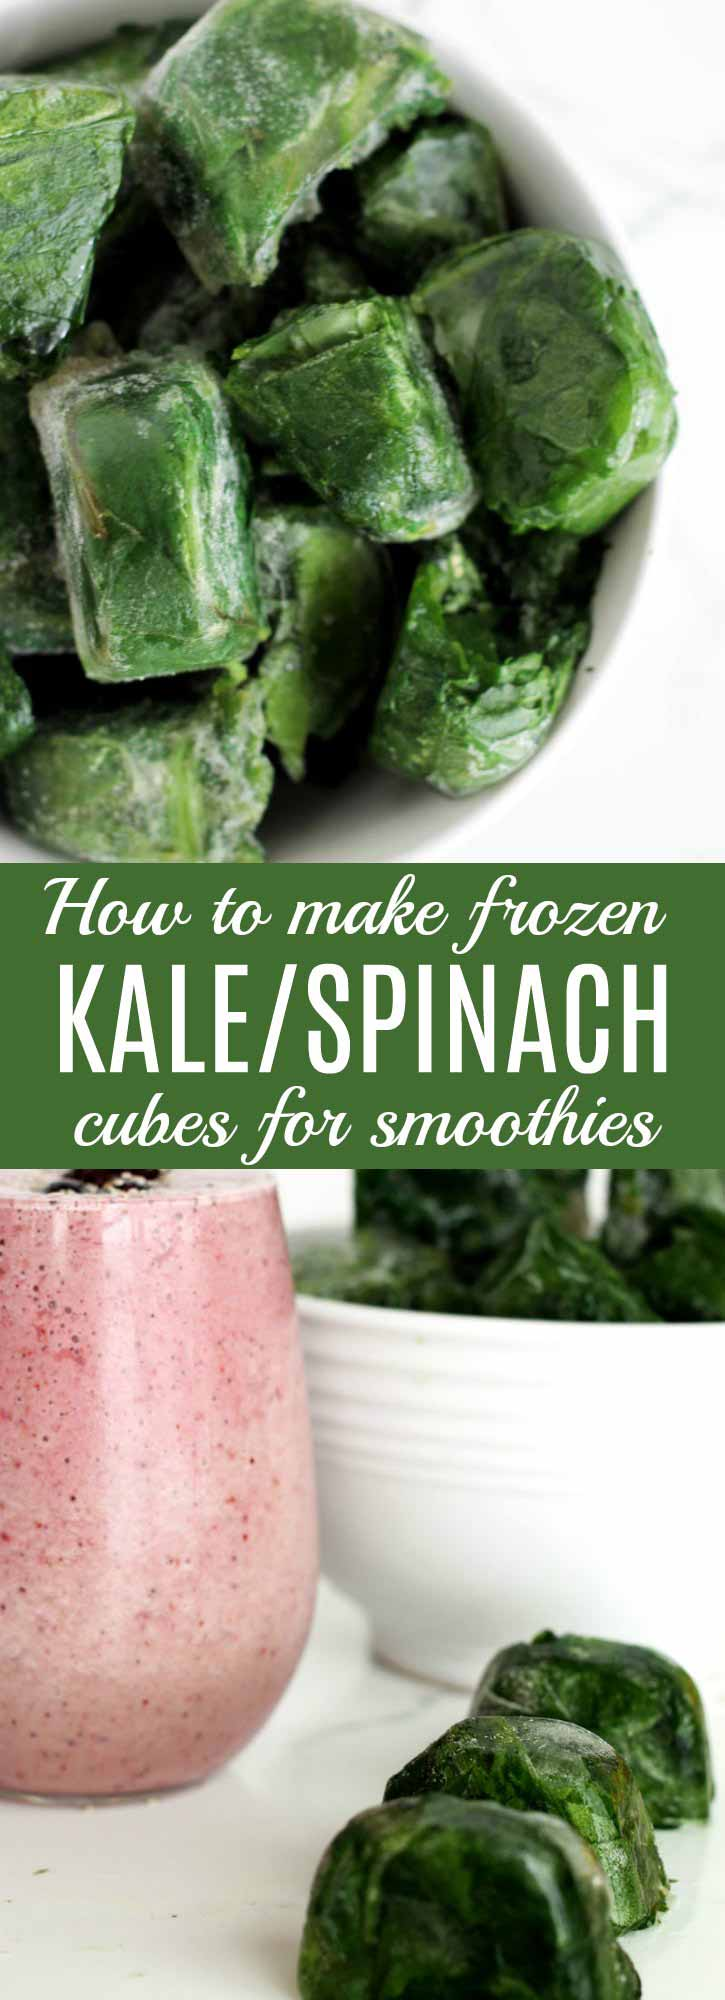 How to Make Frozen Kale & Spinach Cubes: These kale & spinach cubes are easy to make & easy on the budget. A great way to always have healthy smoothie ingredients on hand. | thenourishedfamily.com